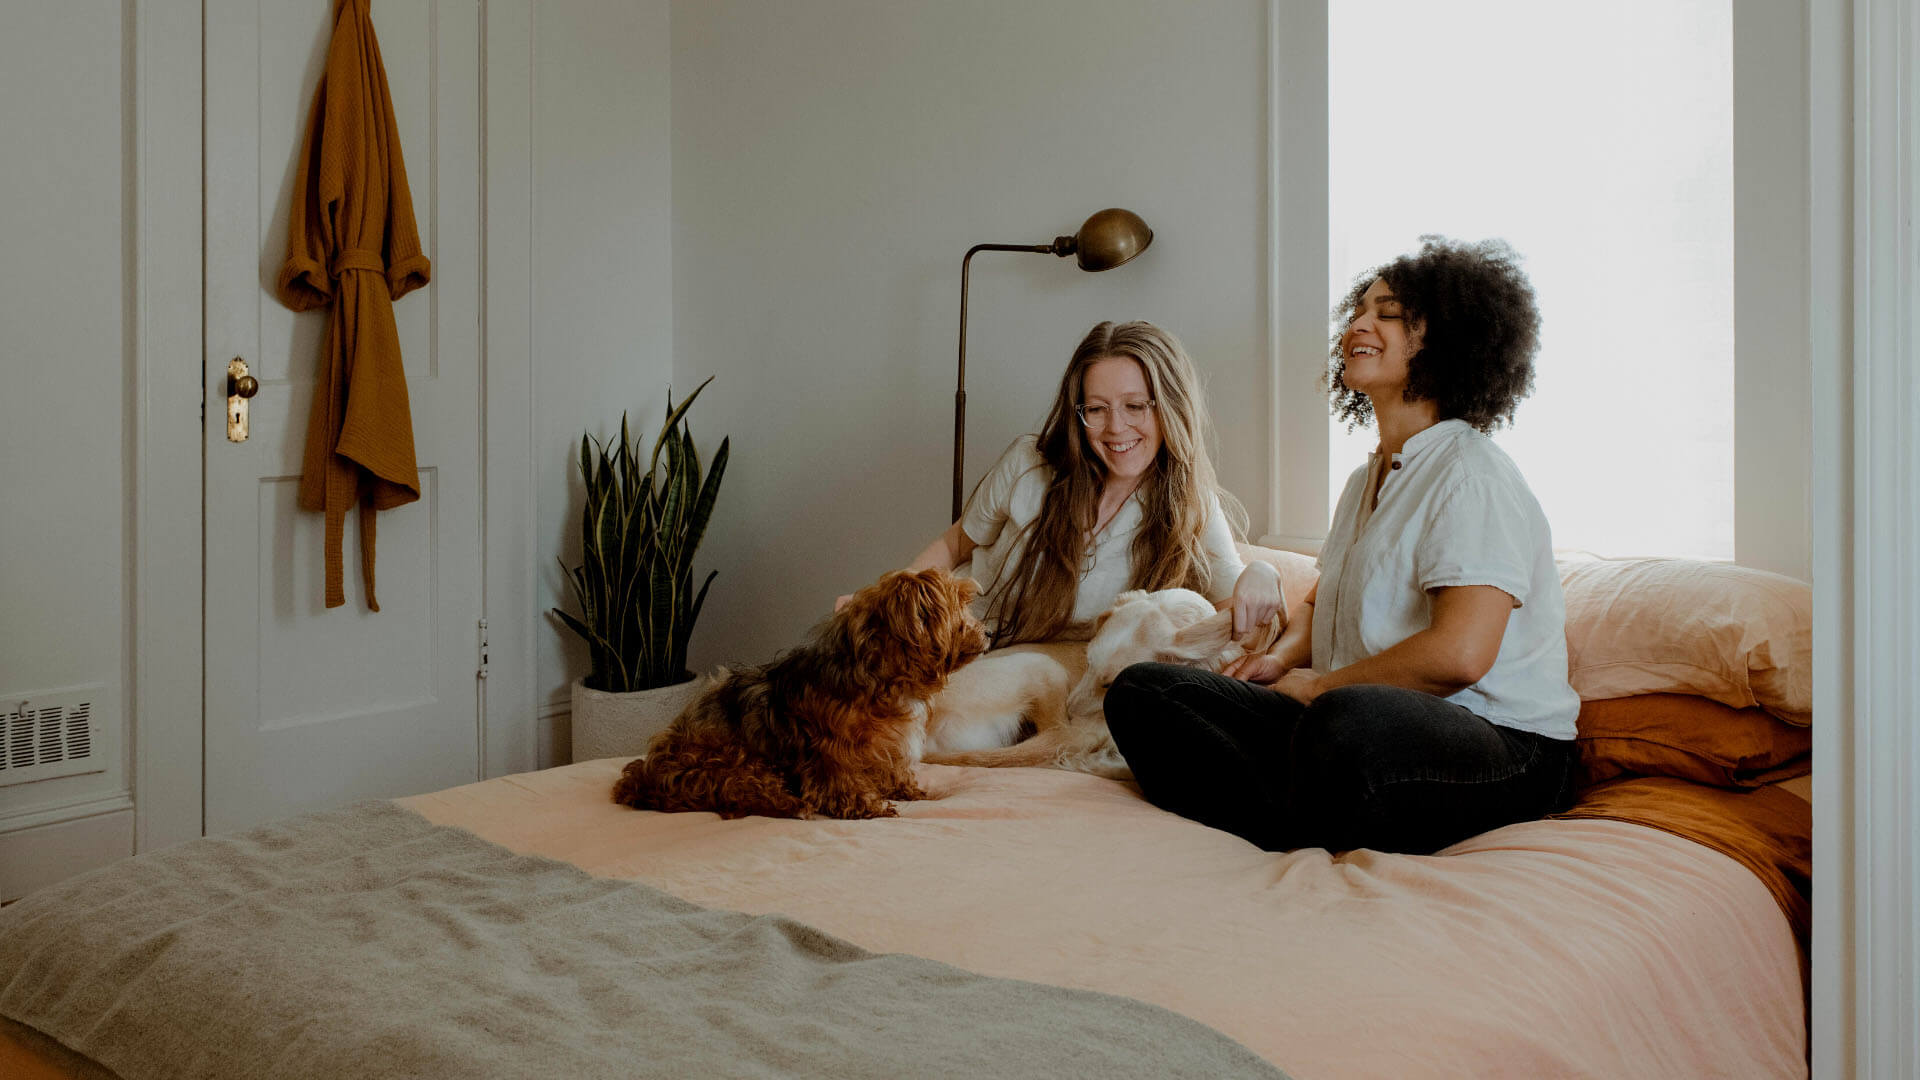 two women sitting on bed with dog